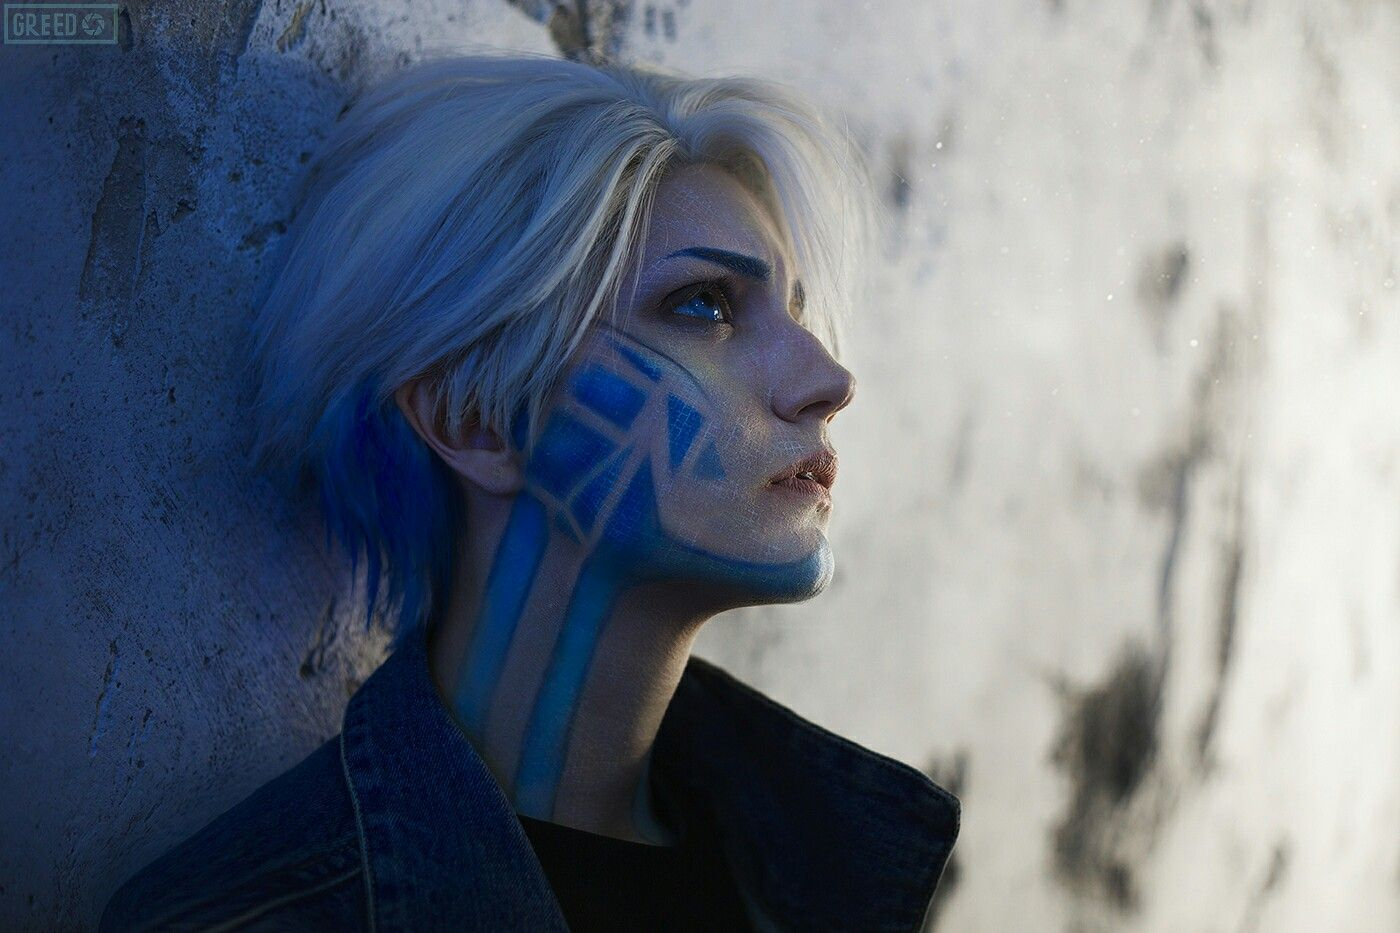 Pin By Moon Flower On Cosplay Parzival Ready Player One Ready